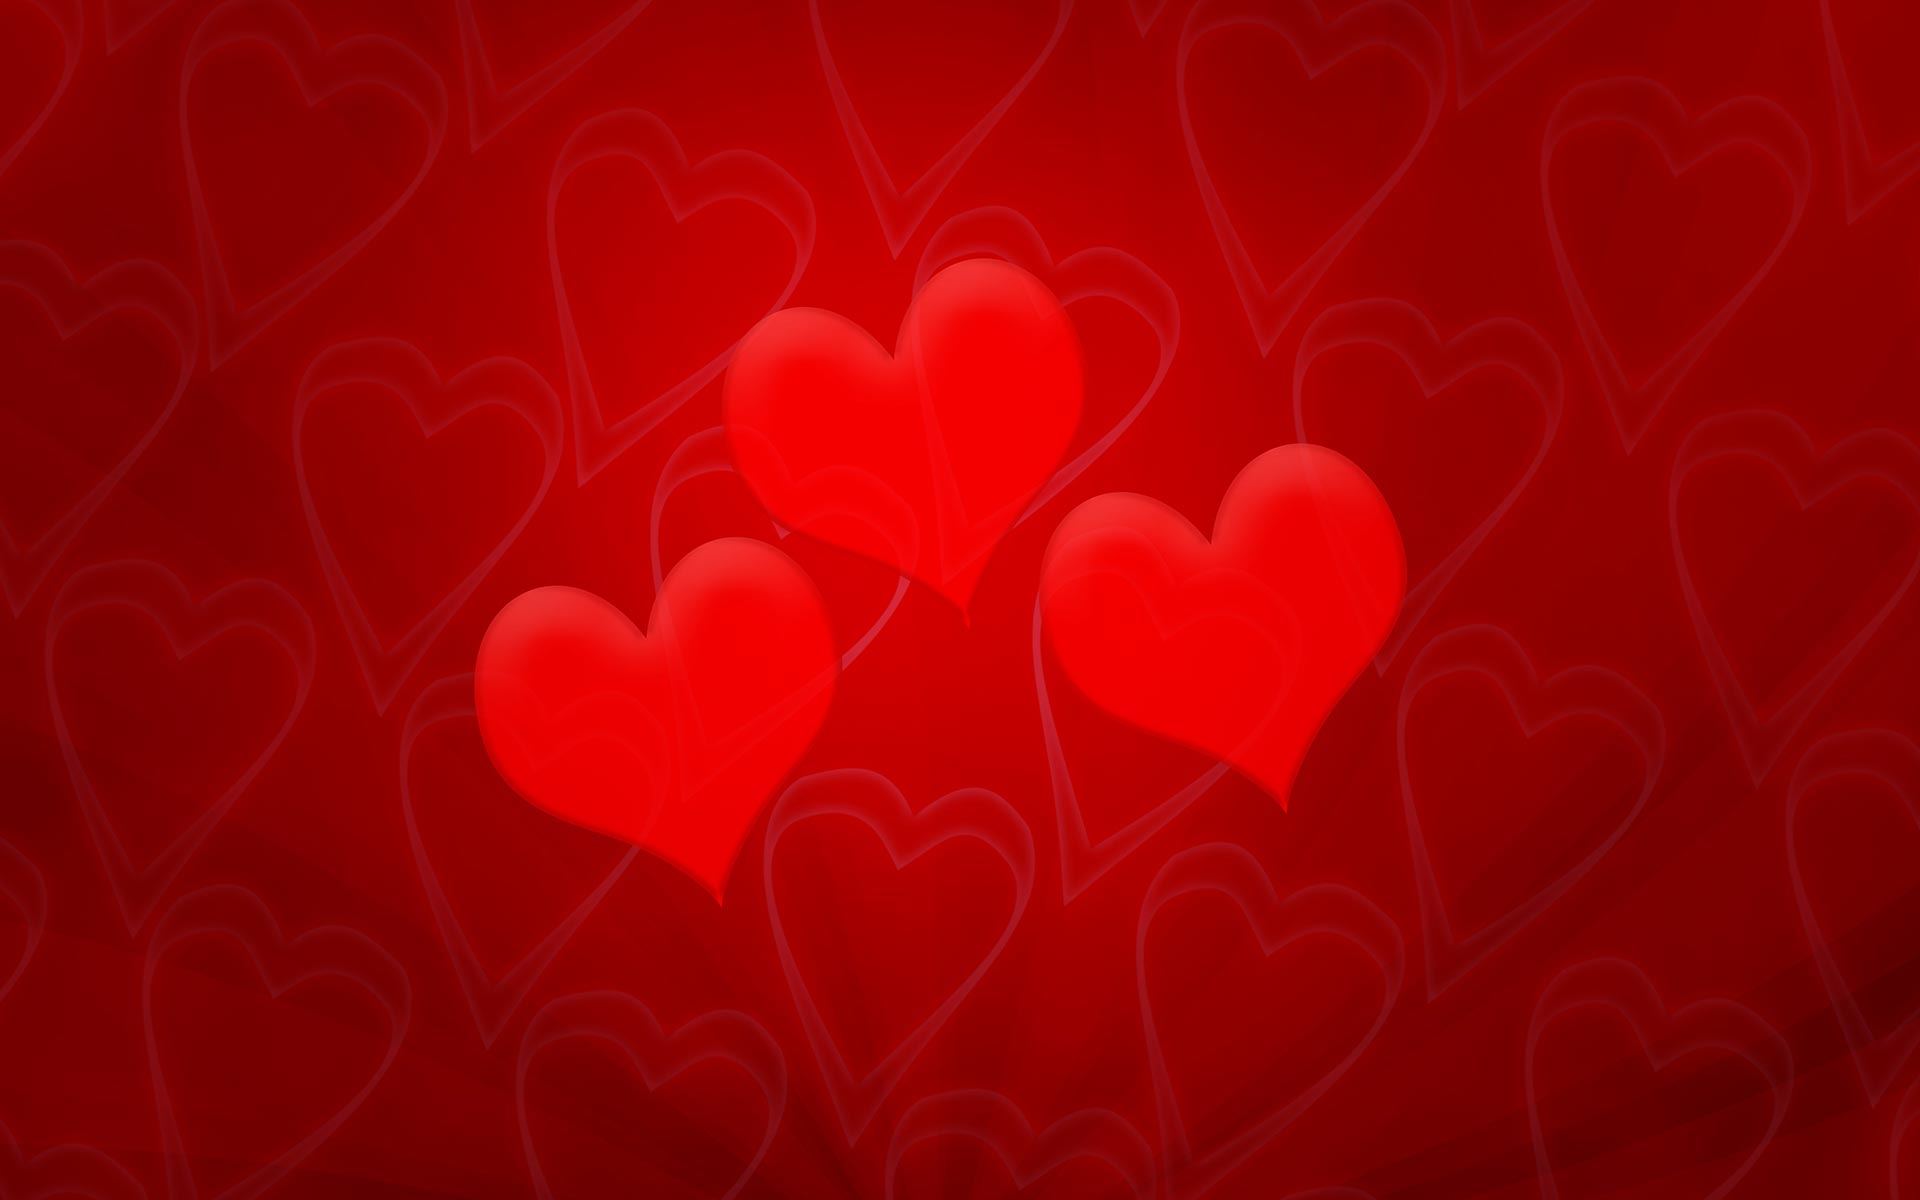 Love HD Wallpapers 1